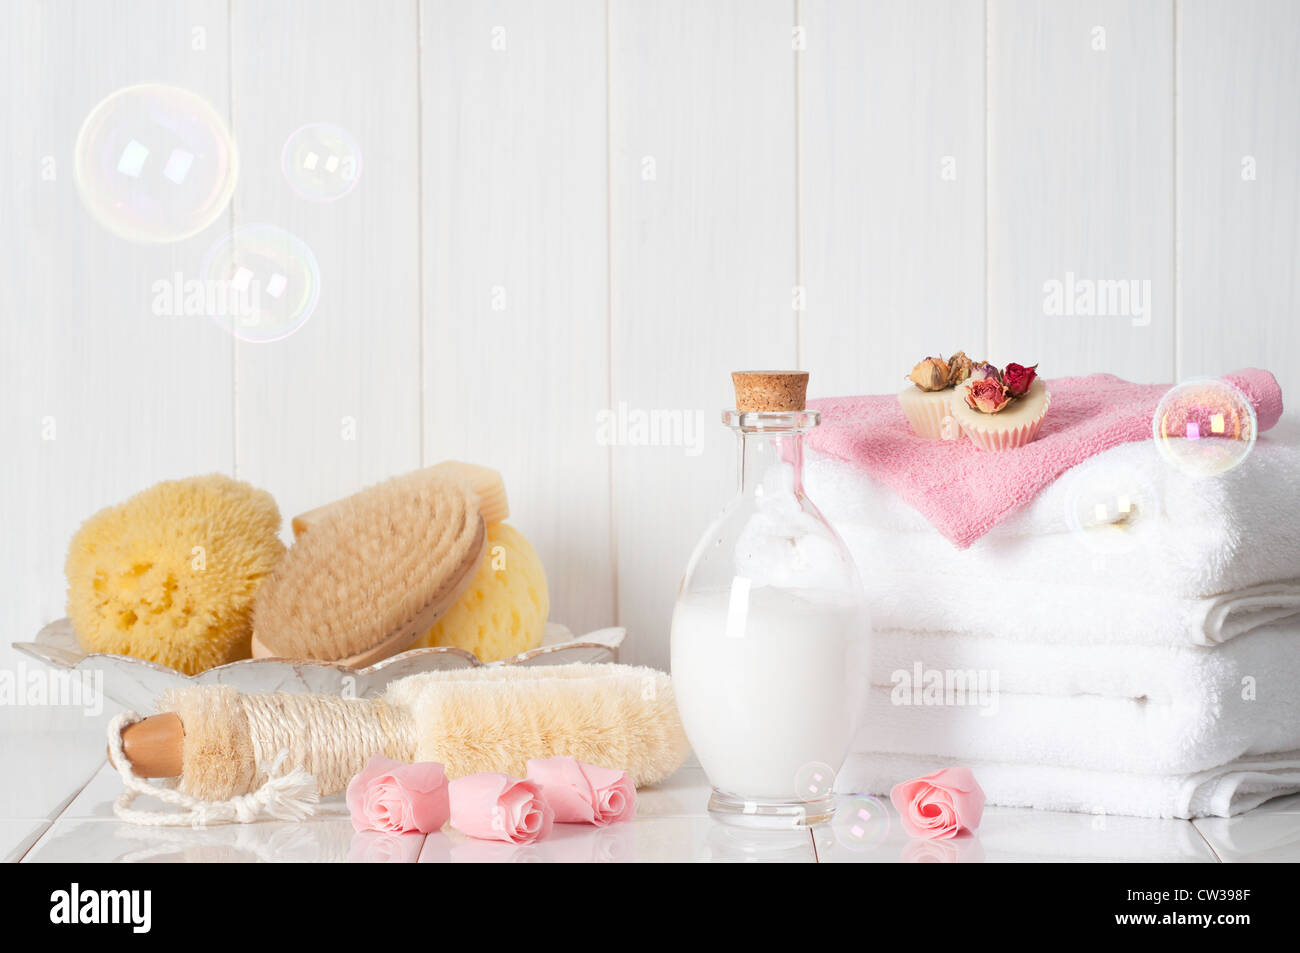 Luxury bathroom spa products with bubbles Stock Photo: 49860287 - Alamy